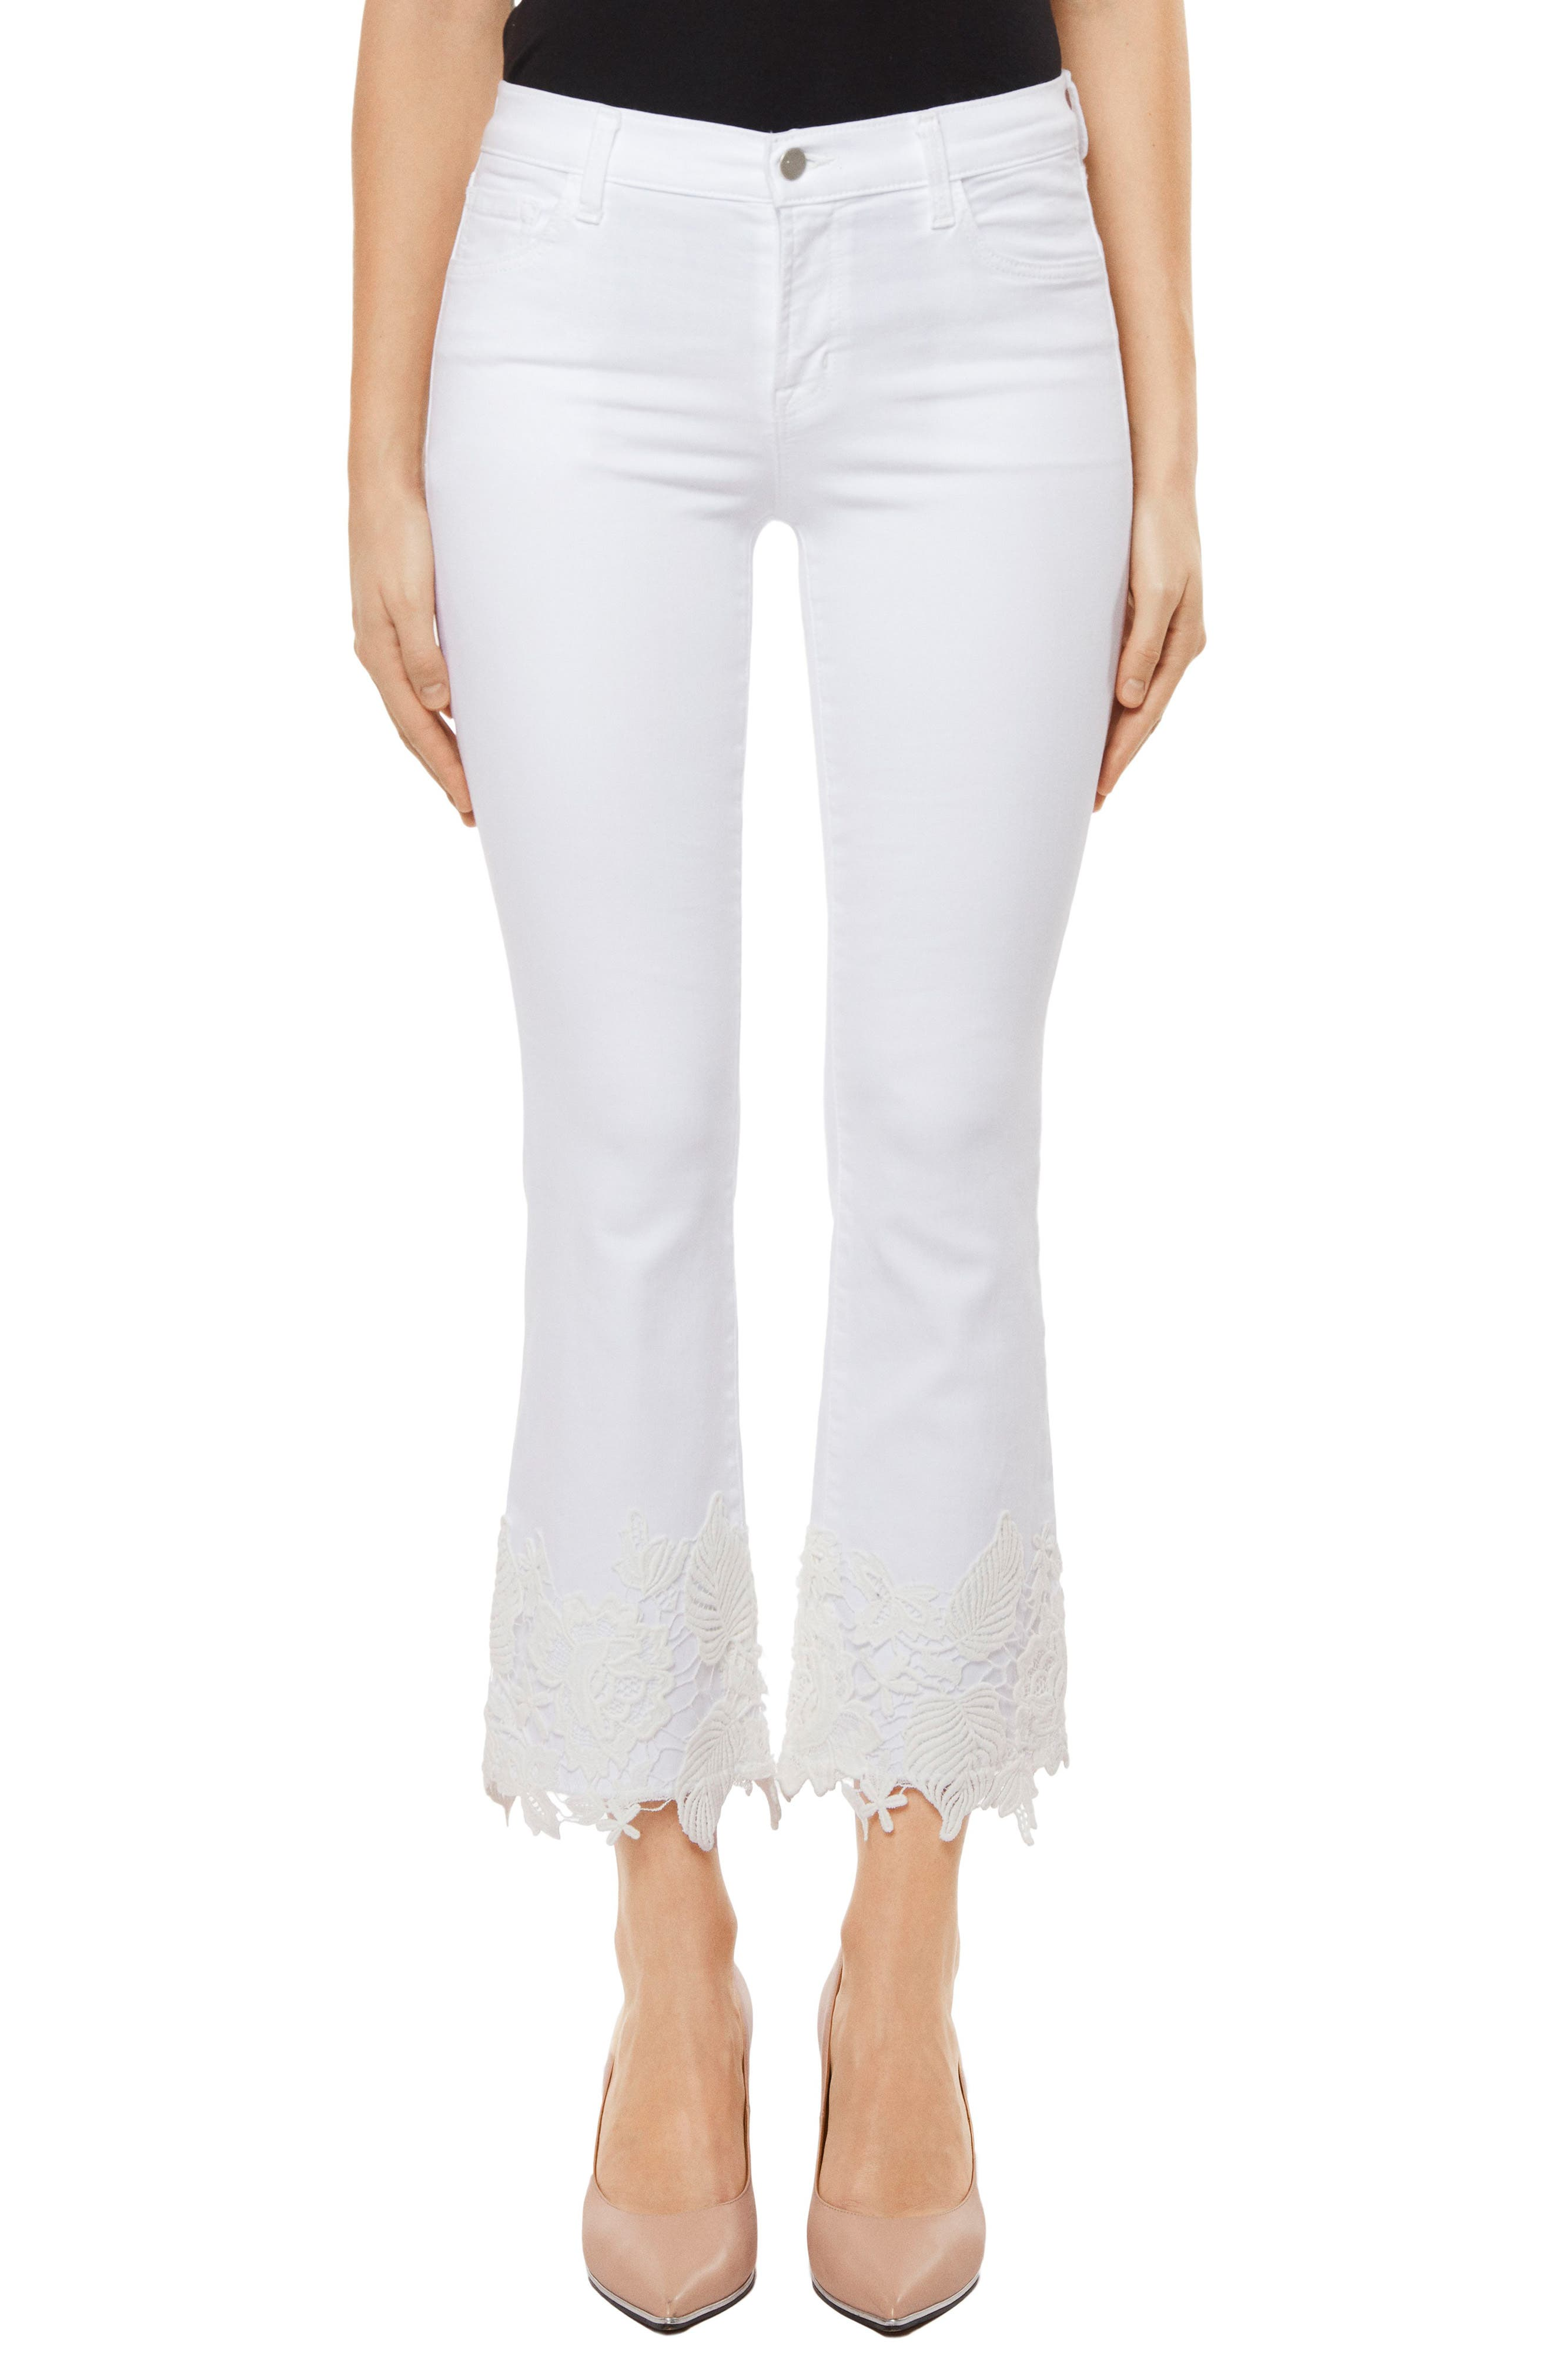 Alternate Image 1 Selected - J Brand Selena Crop Bootcut Jeans (White Lace)